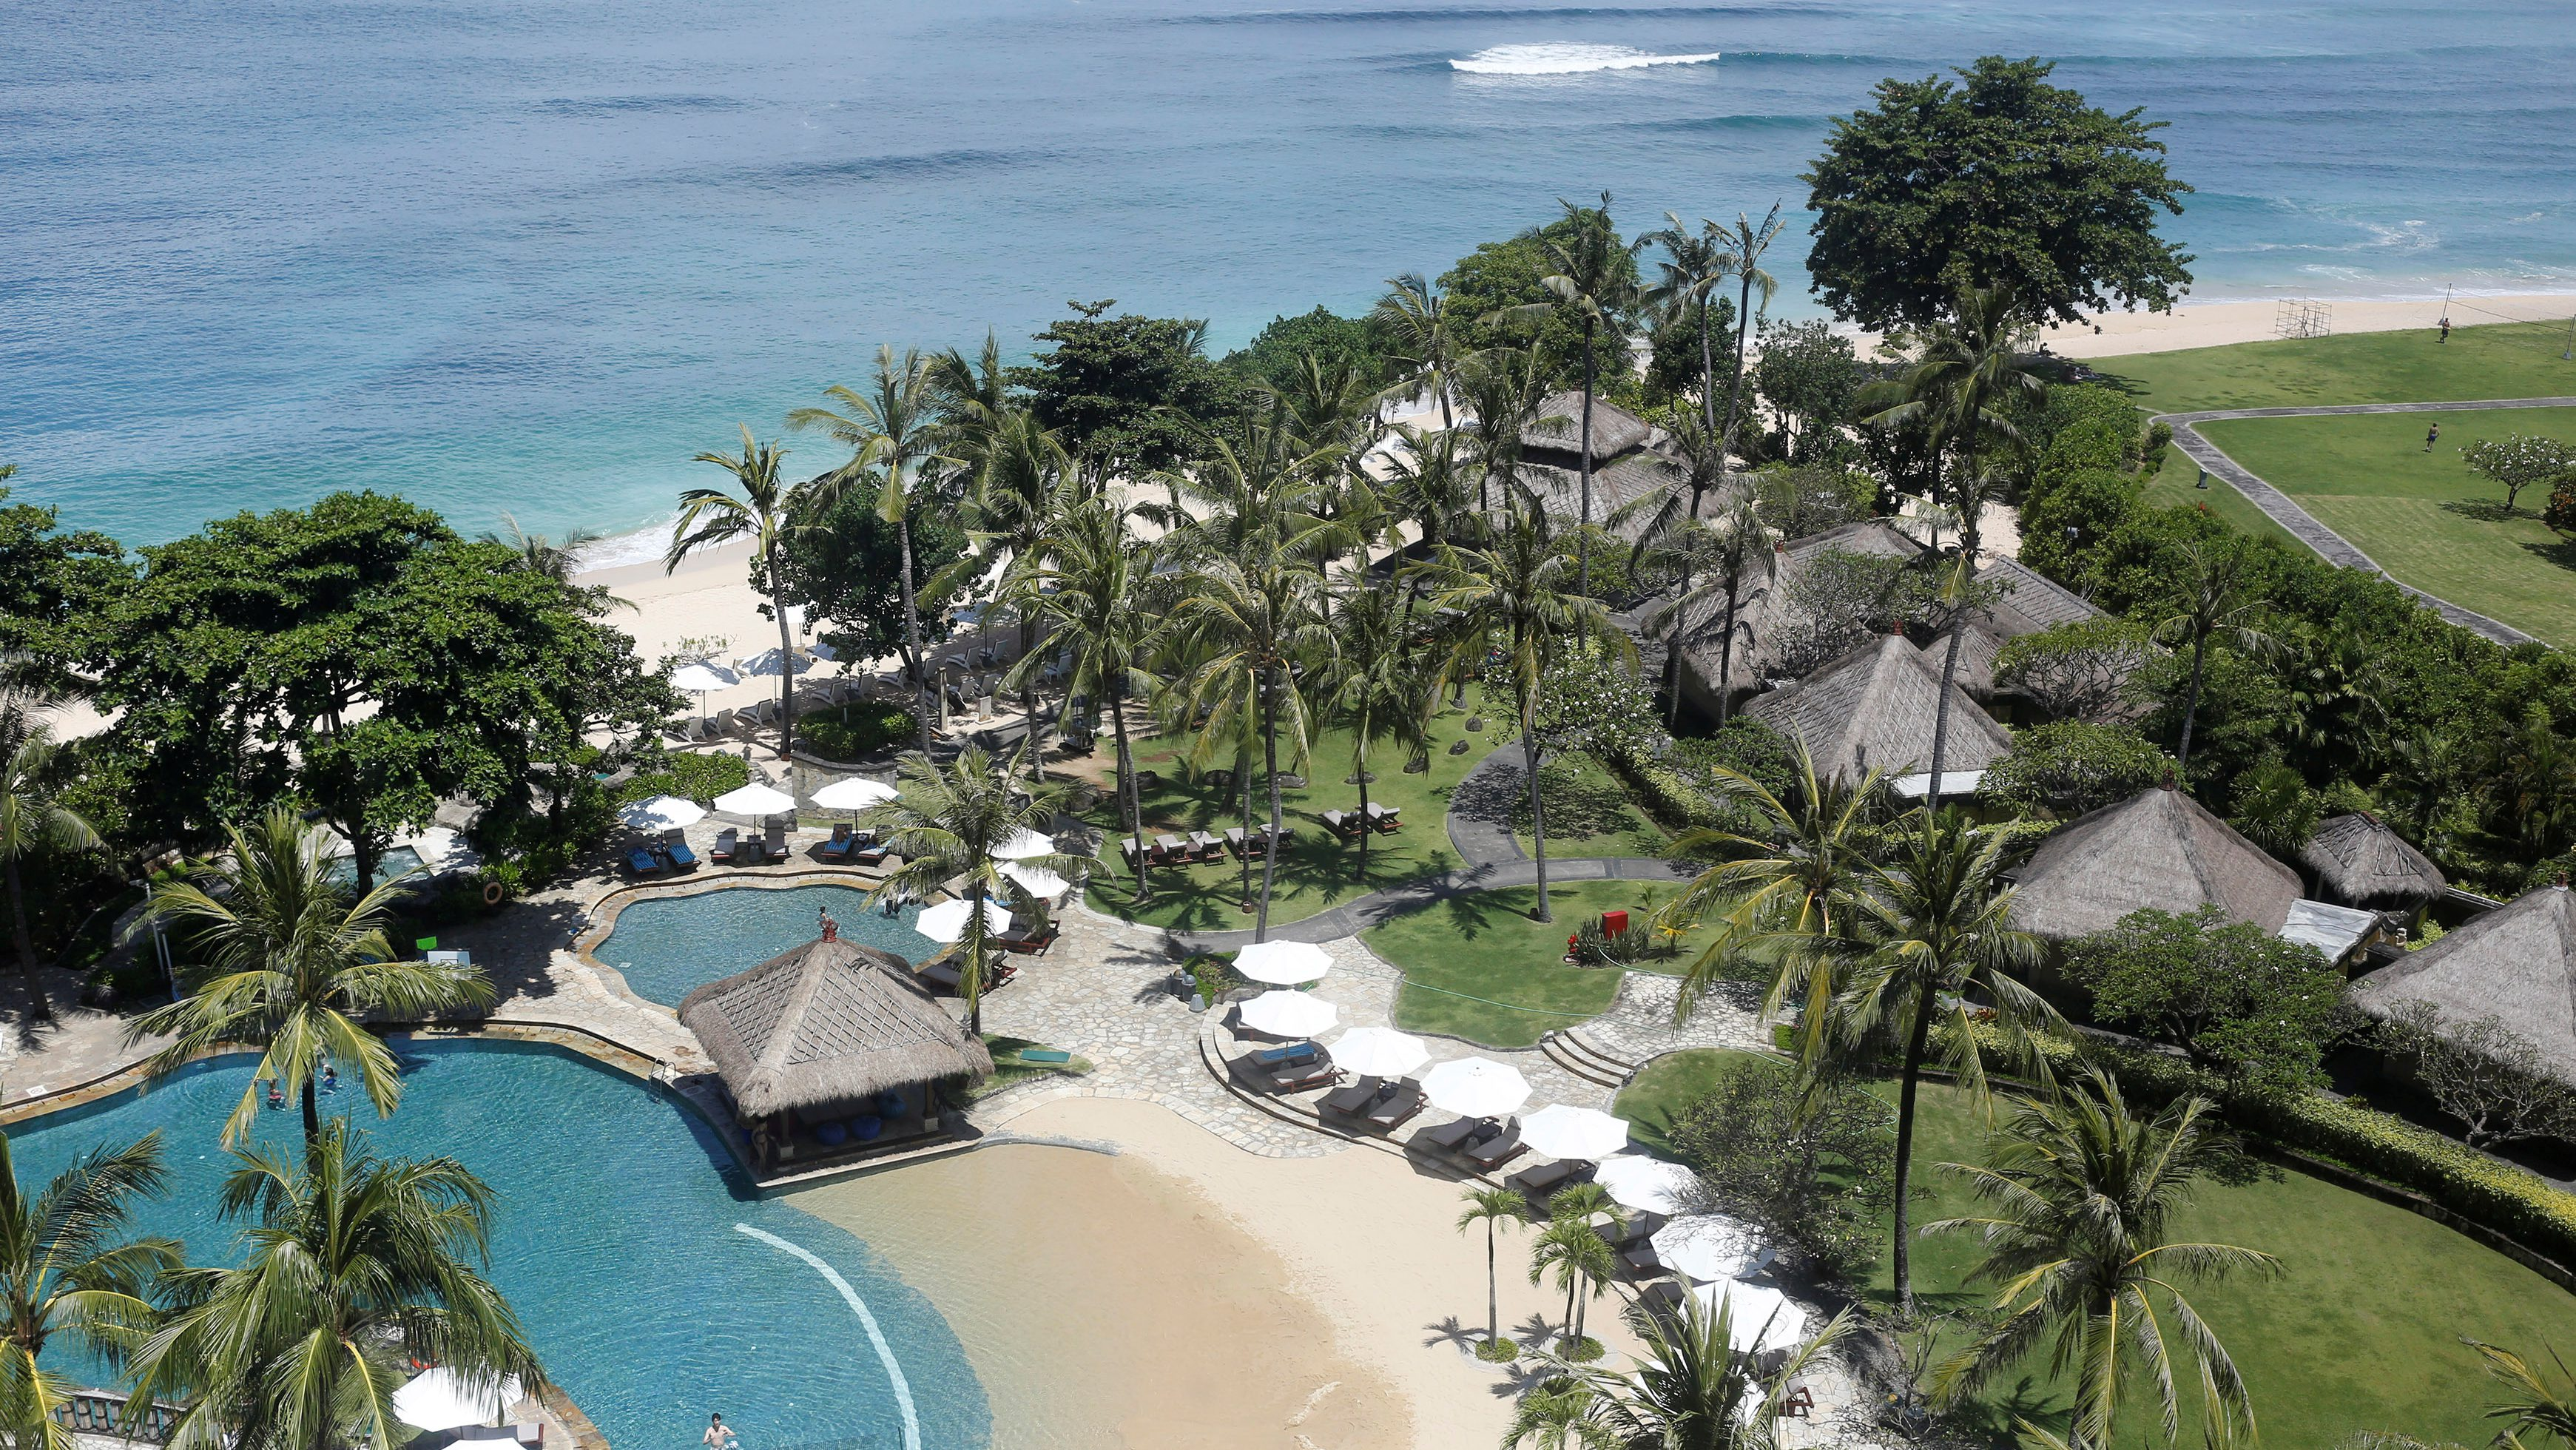 A view of part of the grounds of the Hilton Bali Resort located in the luxury resort area of Nusa Dua ahead of Saudi Arabia's King Salman's visit on the island of Bali, Indonesia